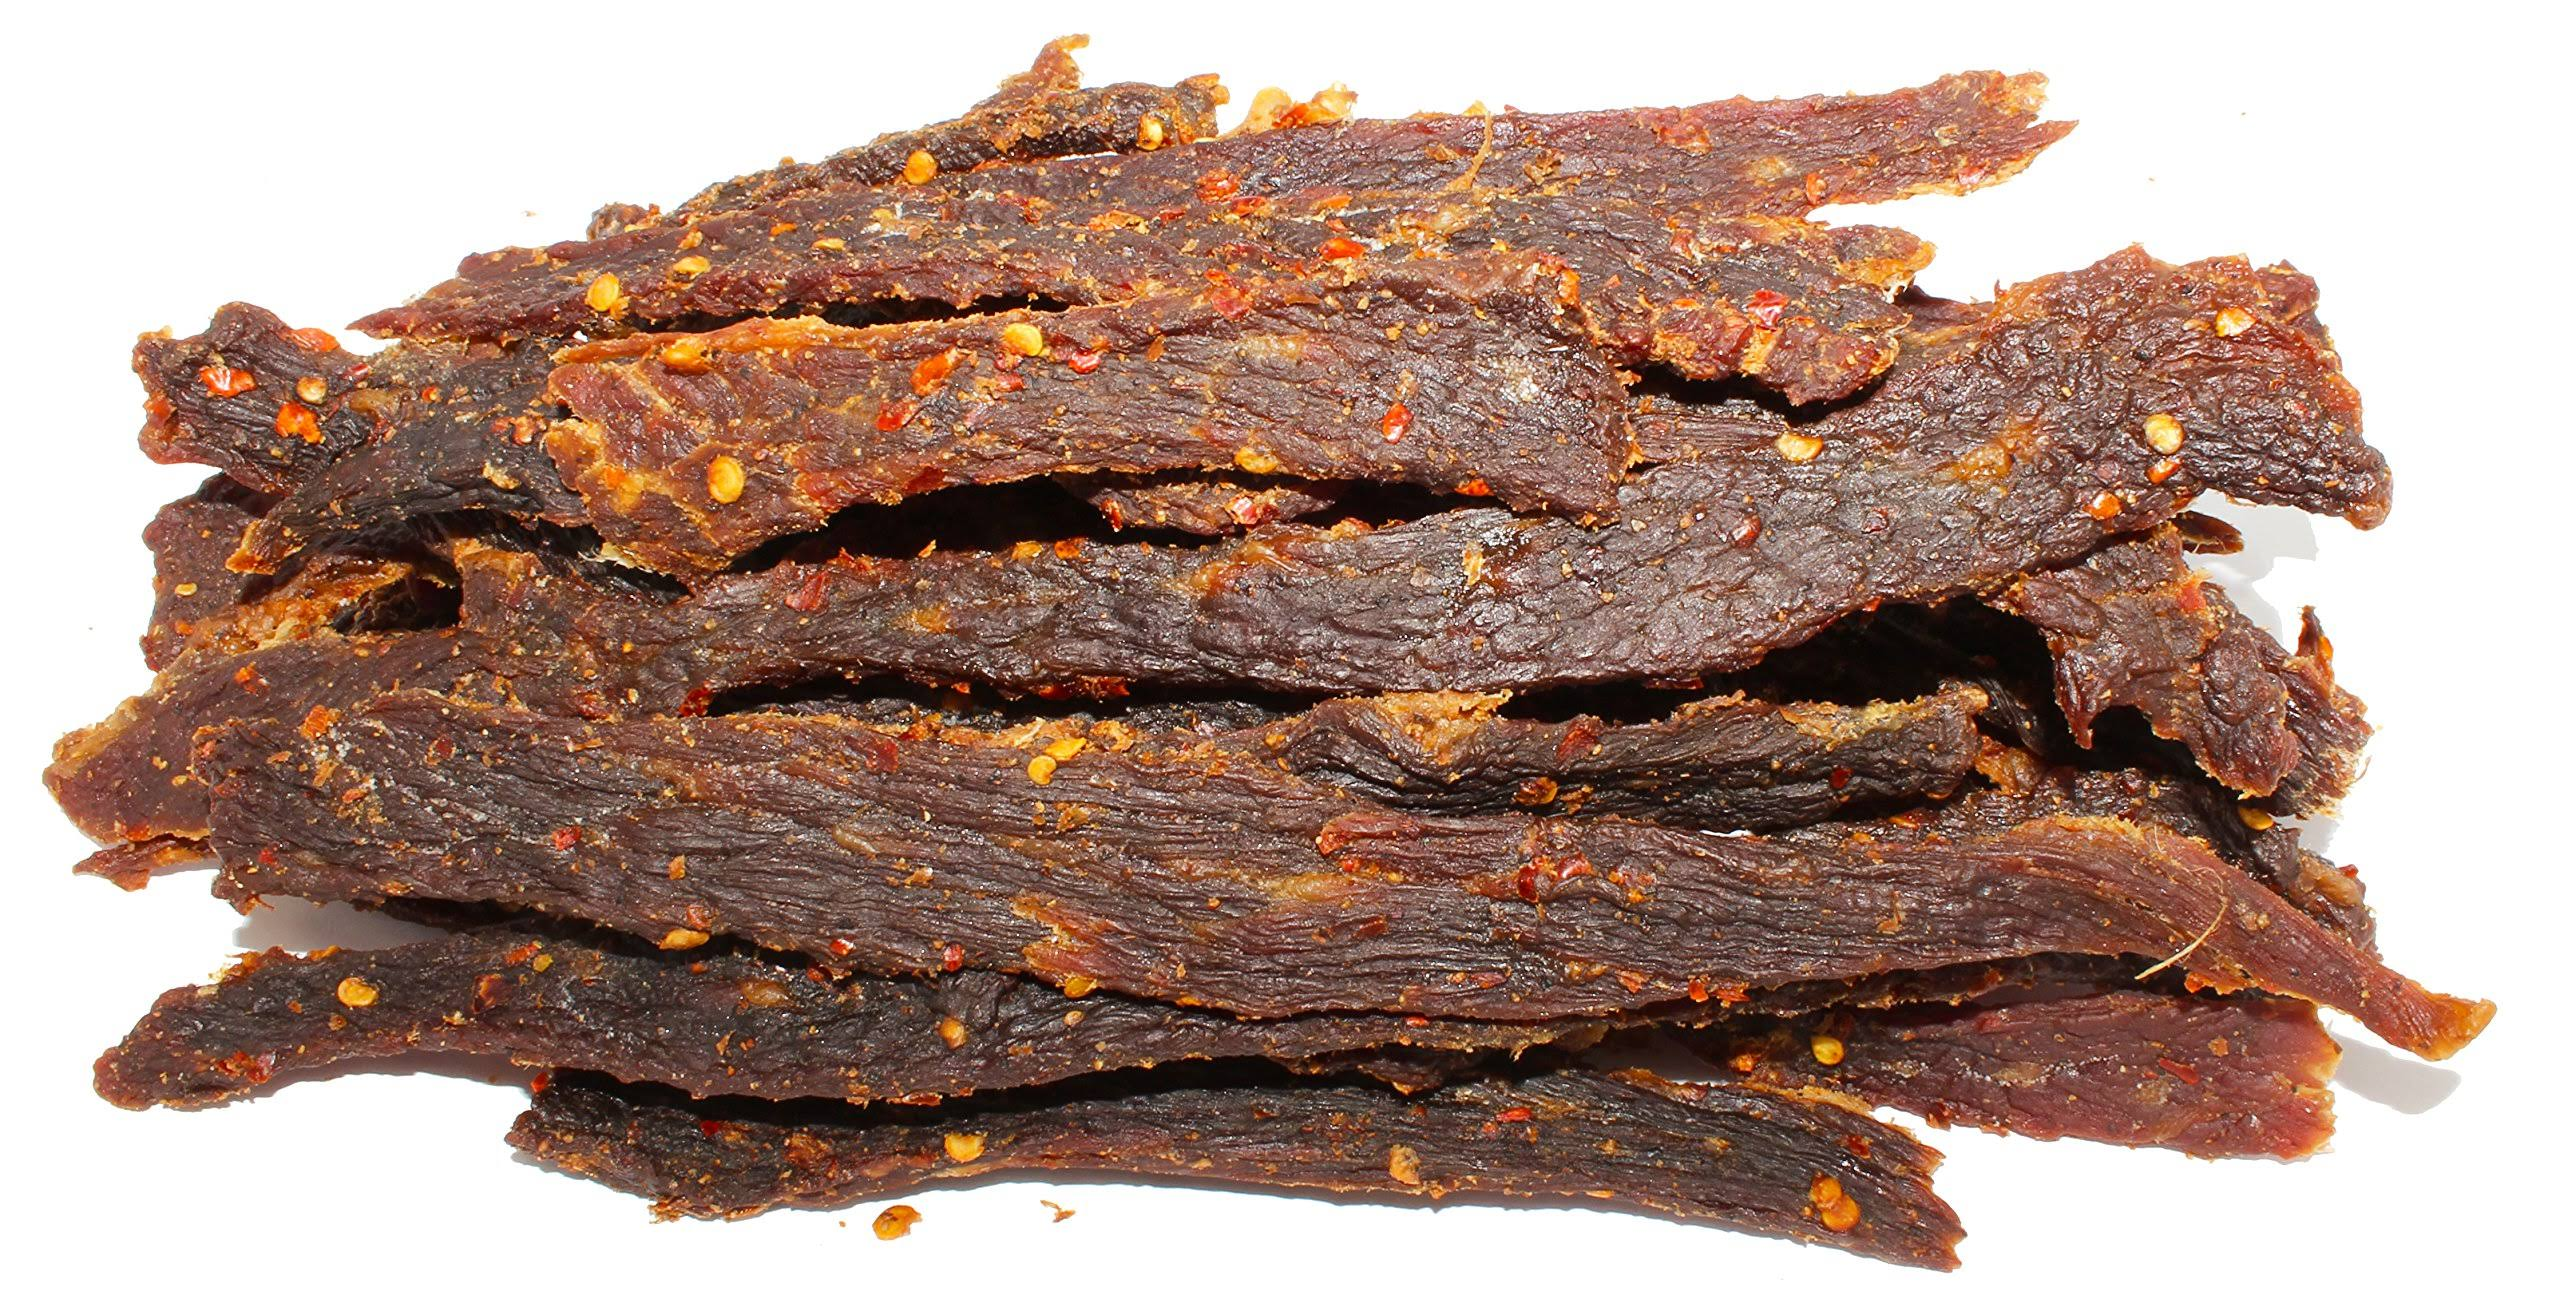 People's Choice Beef Jerky - Old Fashioned - Hot & Spicy - Sugar-Free, Carb-Free